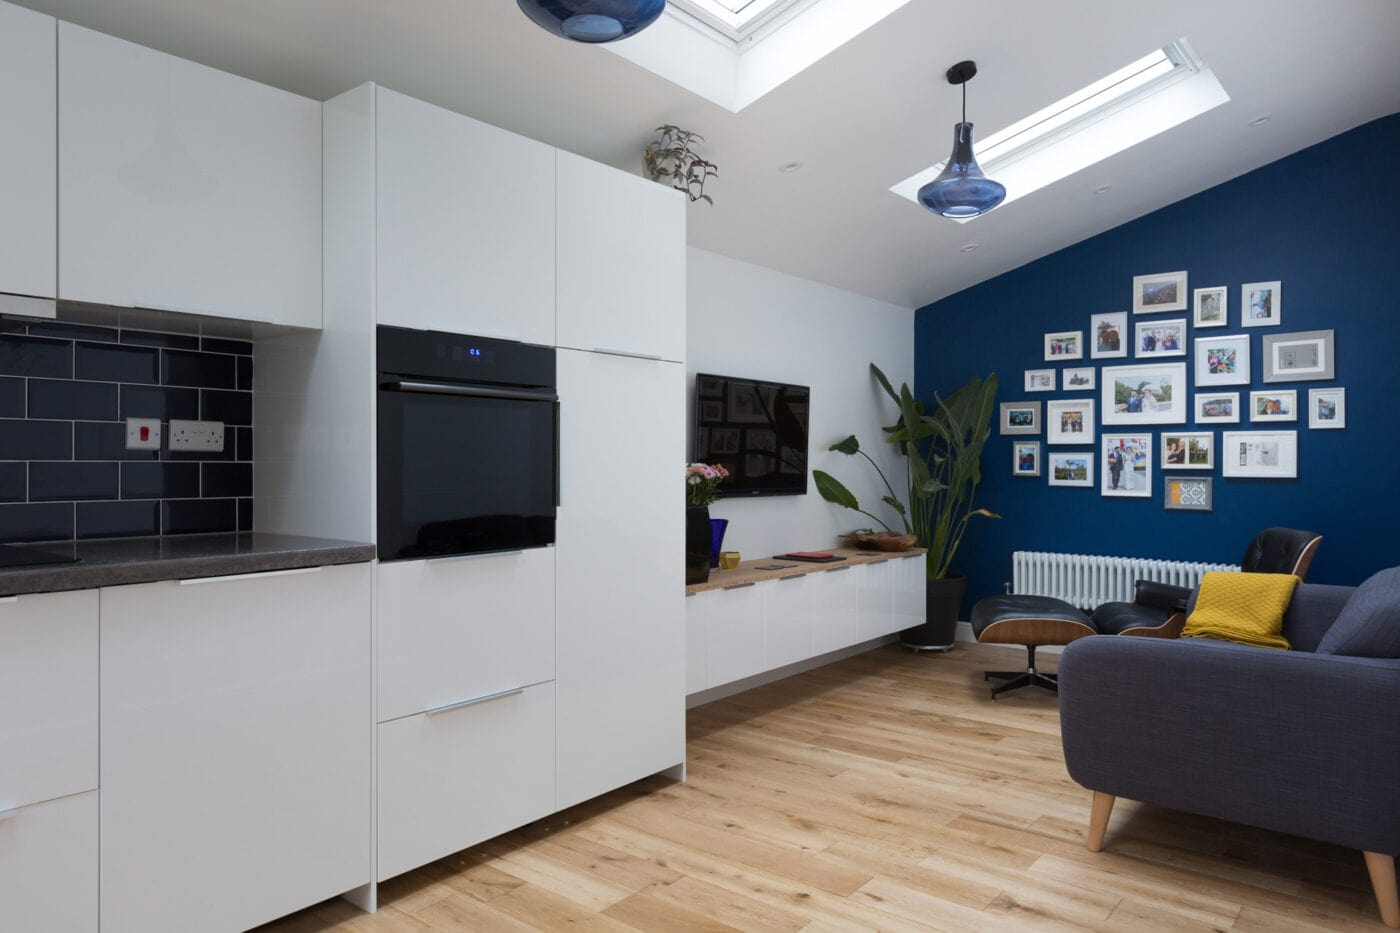 Kitchen Extensions With Velux Windows House Extensions South London Specialist Home Extension Builders